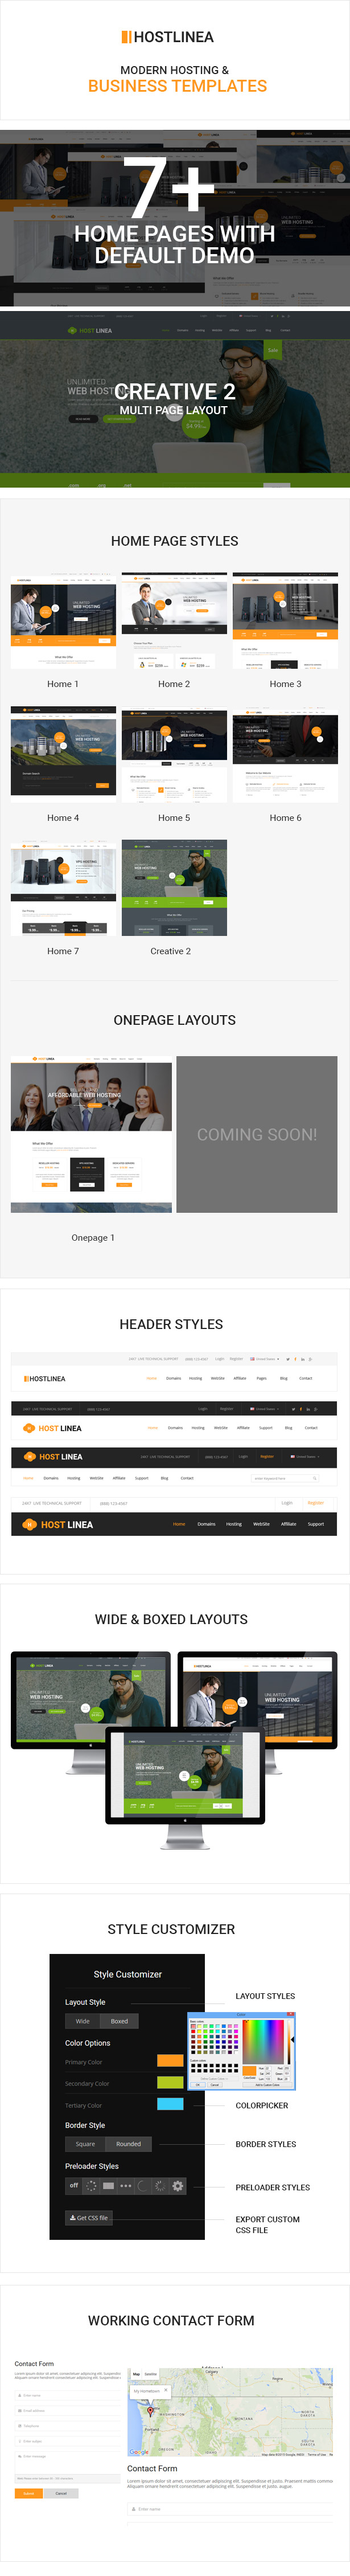 Hostlinea - Web Hosting, Responsive HTML5 Template by codelayers ...